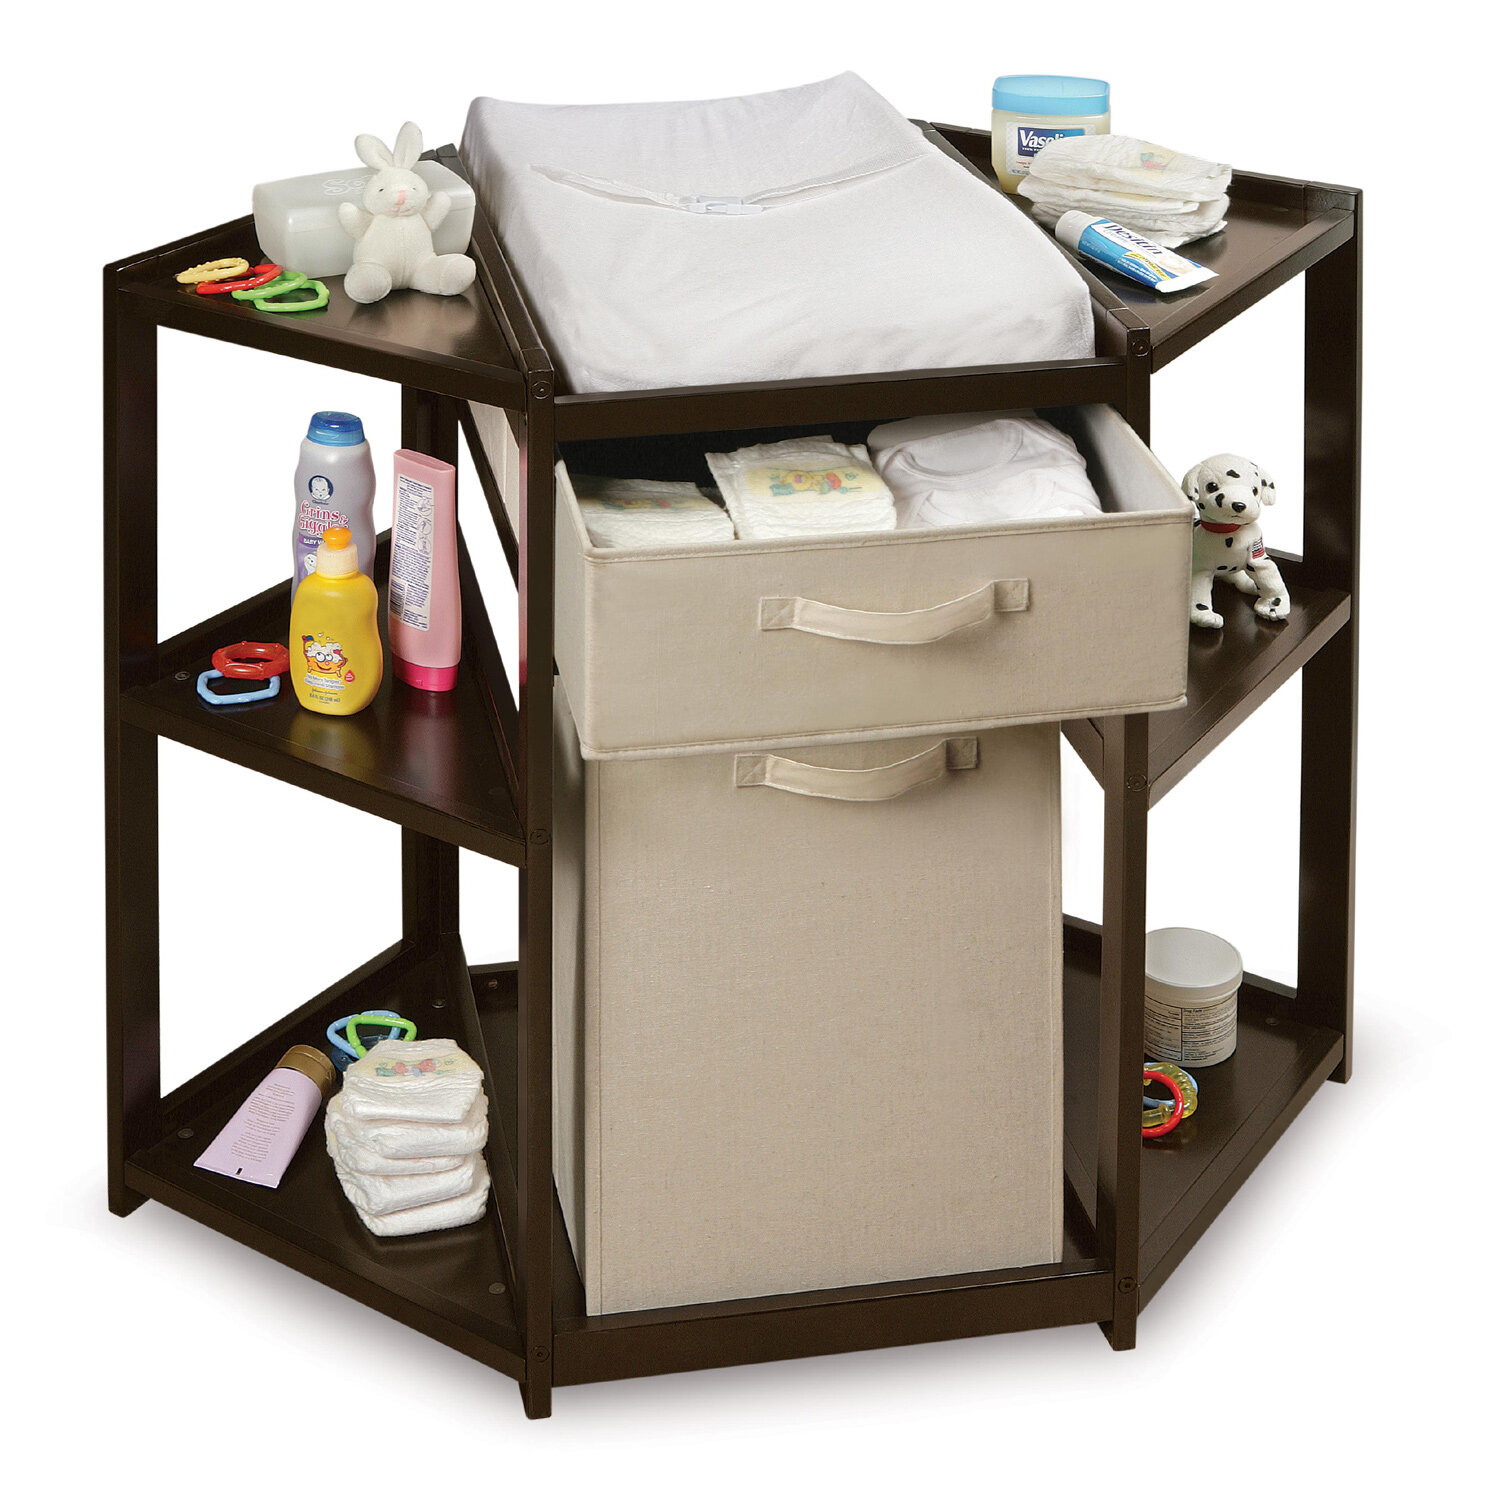 91131ee4de4 Badger Basket Diaper Corner Baby Changing Table with Hamper and Basket    Reviews